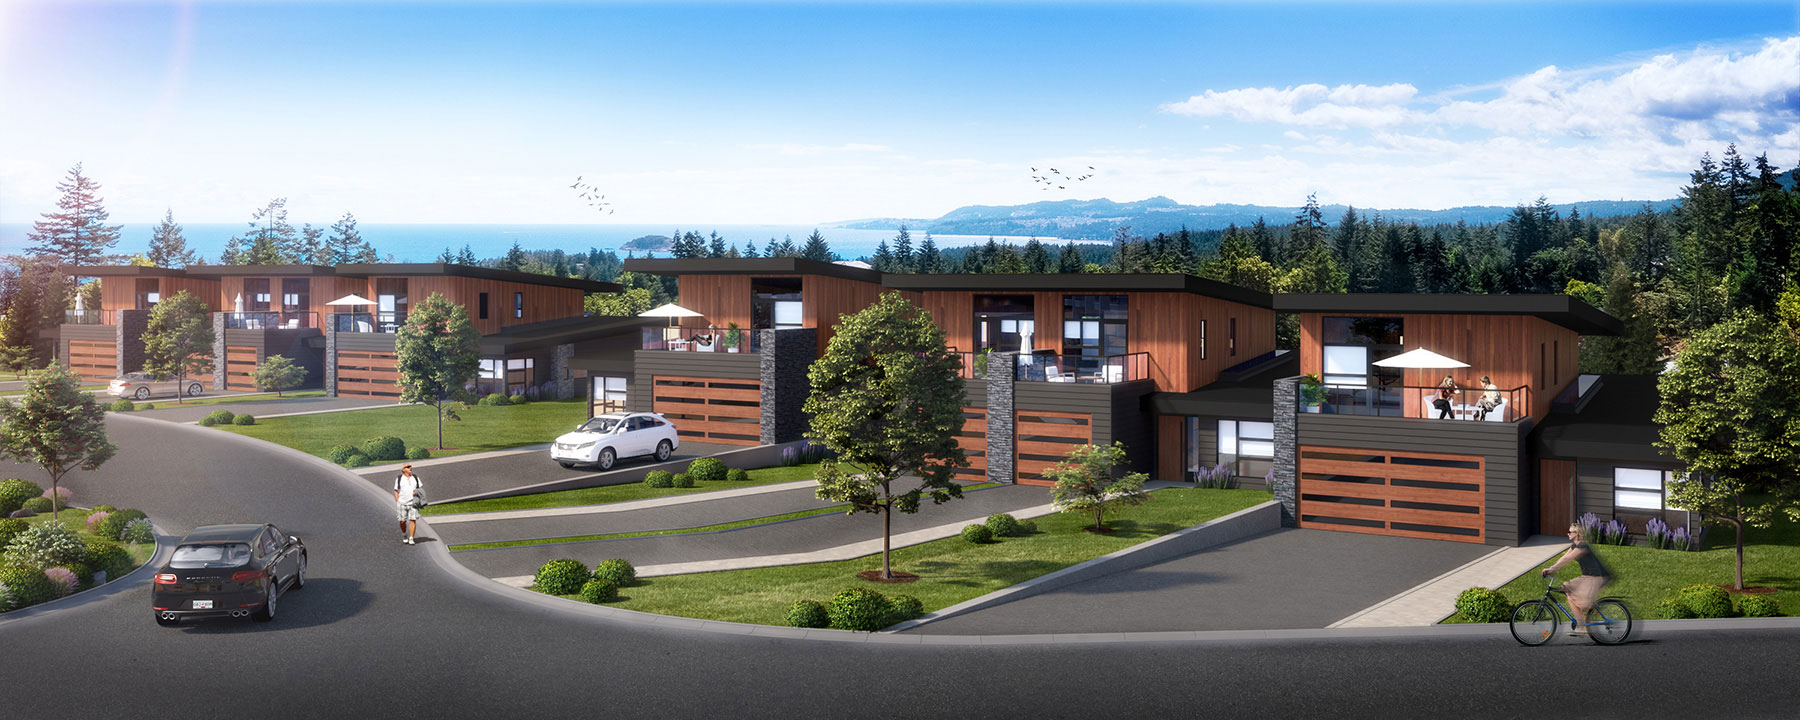 Timber Ridge Townhomes - real estate for sale